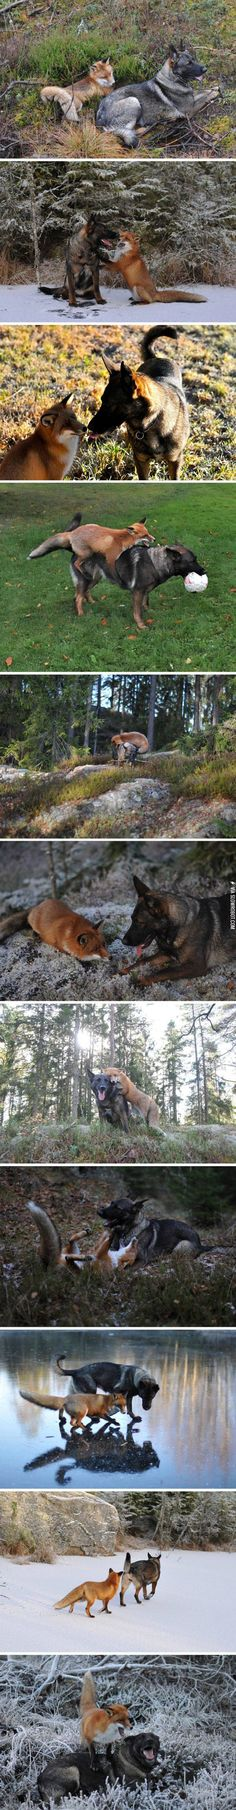 "Tinni the dog has developed an amazing friendship with this wild fox called Snusen (aka Sniffer). Tinni's owner, Torgeir Berge of Norway, has taken many photos and video of the pair playing together. Berge has collaborated with author, Berit Helberg, to publish the book ""Snusen og Tinni"" about these beautiful friends. It has also been published in English as ""Sniffer and Tinni"". http://www.dogheirs.com/misst/posts/4622-amazing-photos-of-dog-and-wild-fox-playing-in-the-woods"